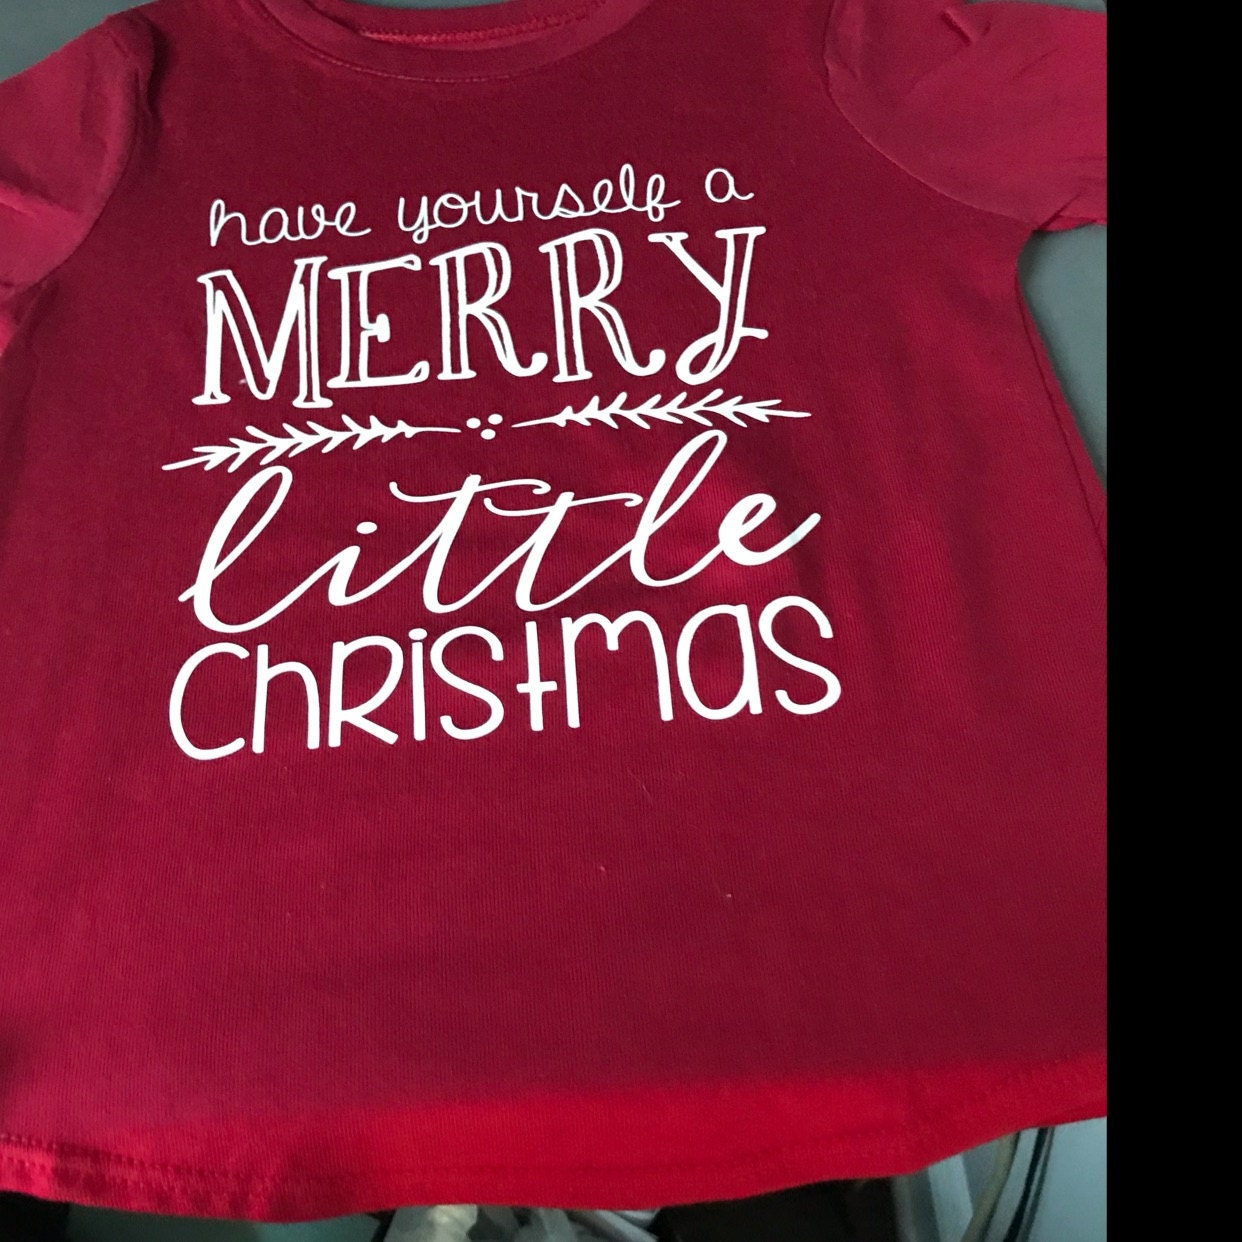 kimberlyjones001 added a photo of their purchase